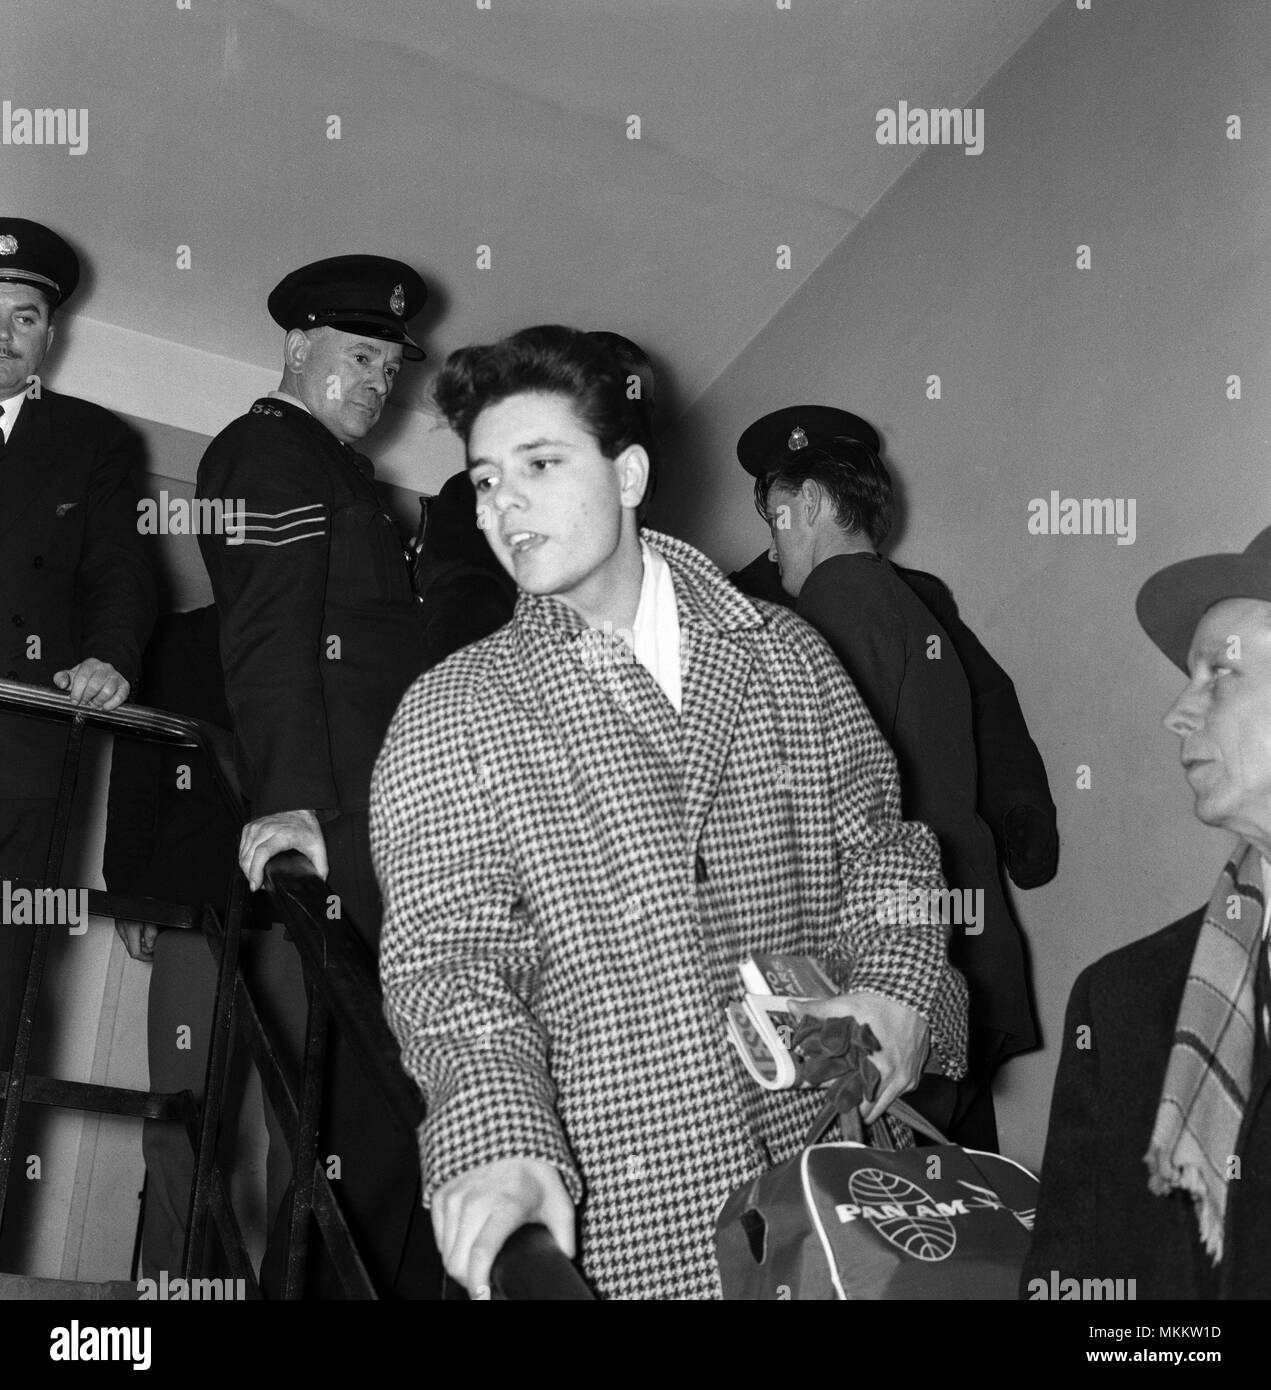 Cliff Richard pictured at London Airport, leaving for New York. 18th January 1960. - Stock Image